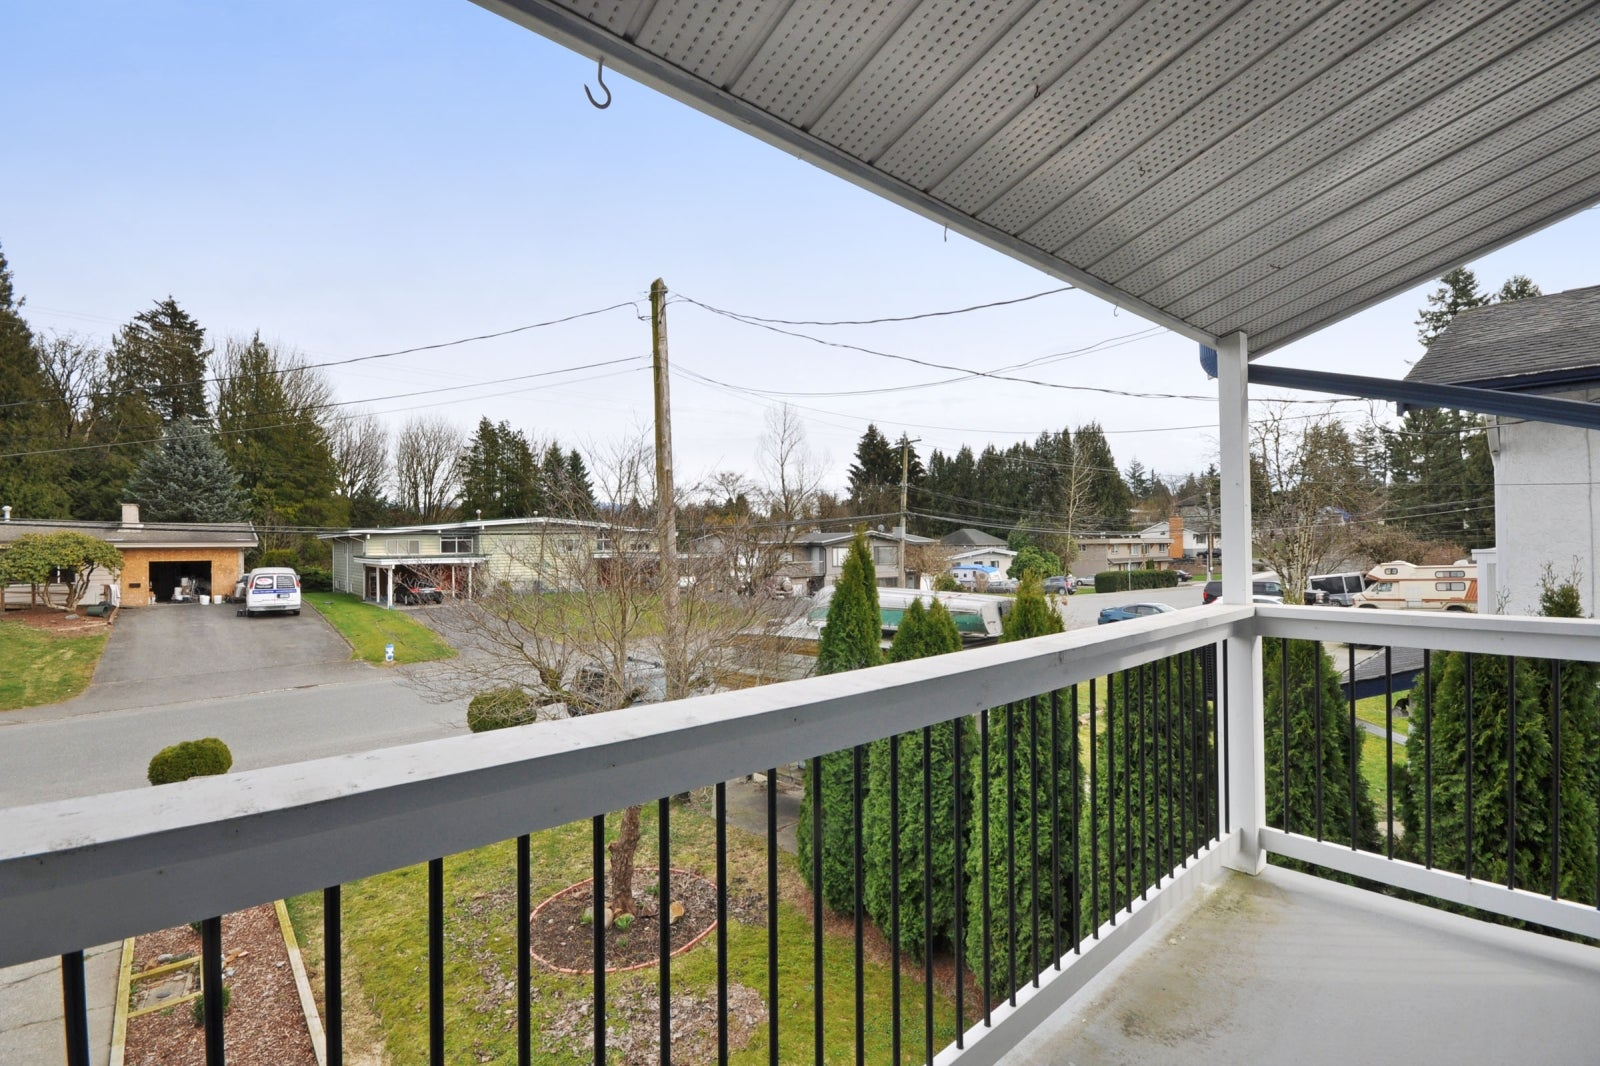 2921 BABICH STREET - Central Abbotsford House/Single Family for sale, 3 Bedrooms (R2155098) #19